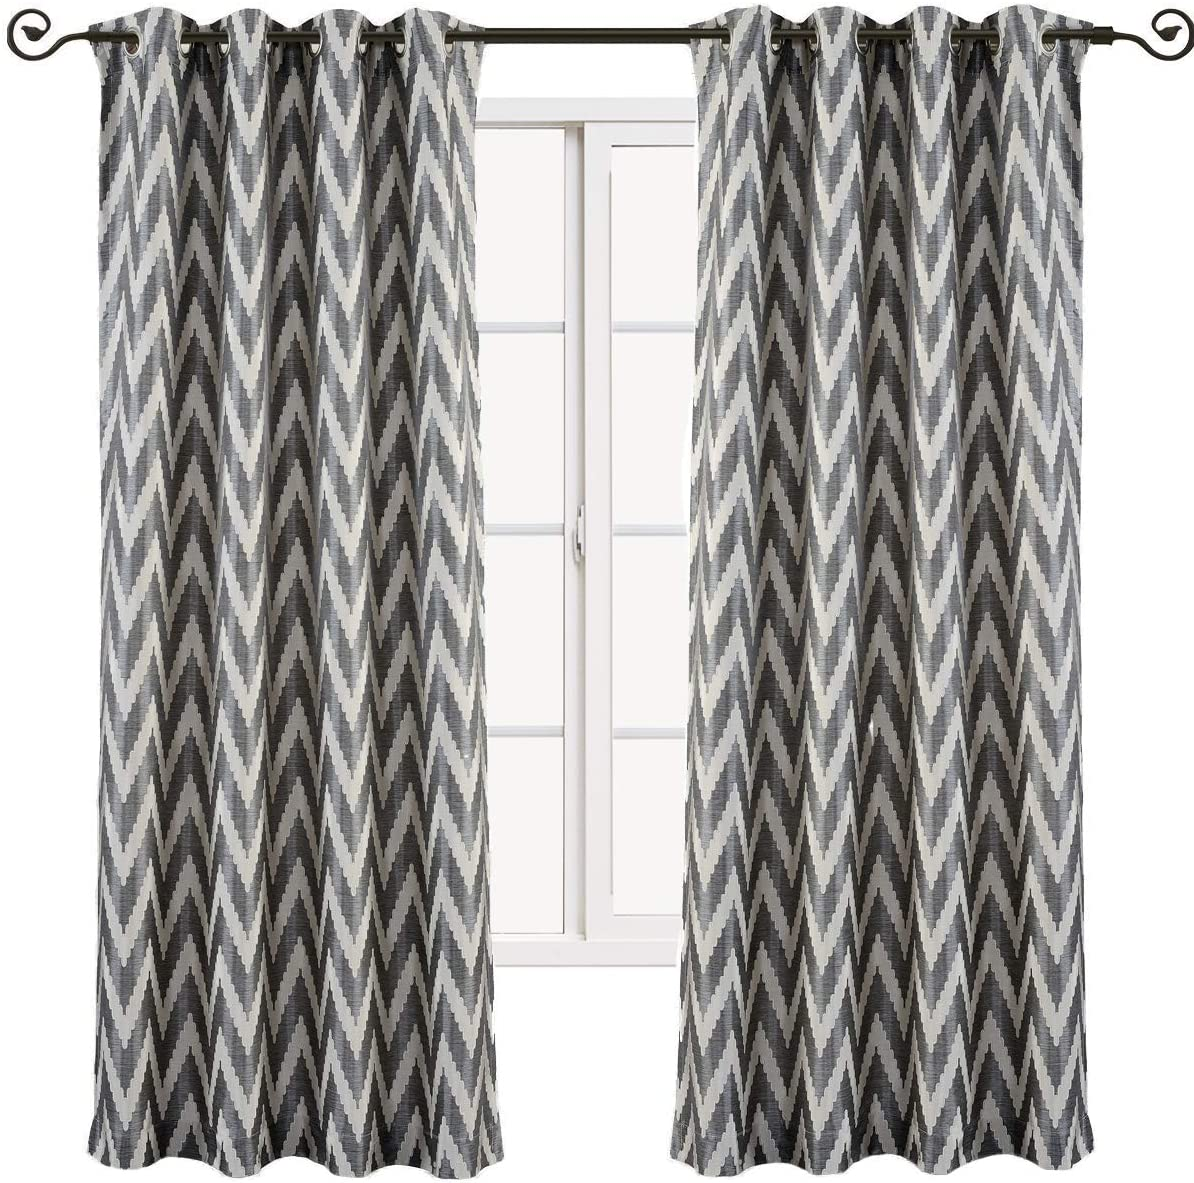 sheetsnthings Lisette Chevron 108-Inch Wide x 108-Inch Long, Set of 2 Jacquard Grommet Top Curtains, Charcoal